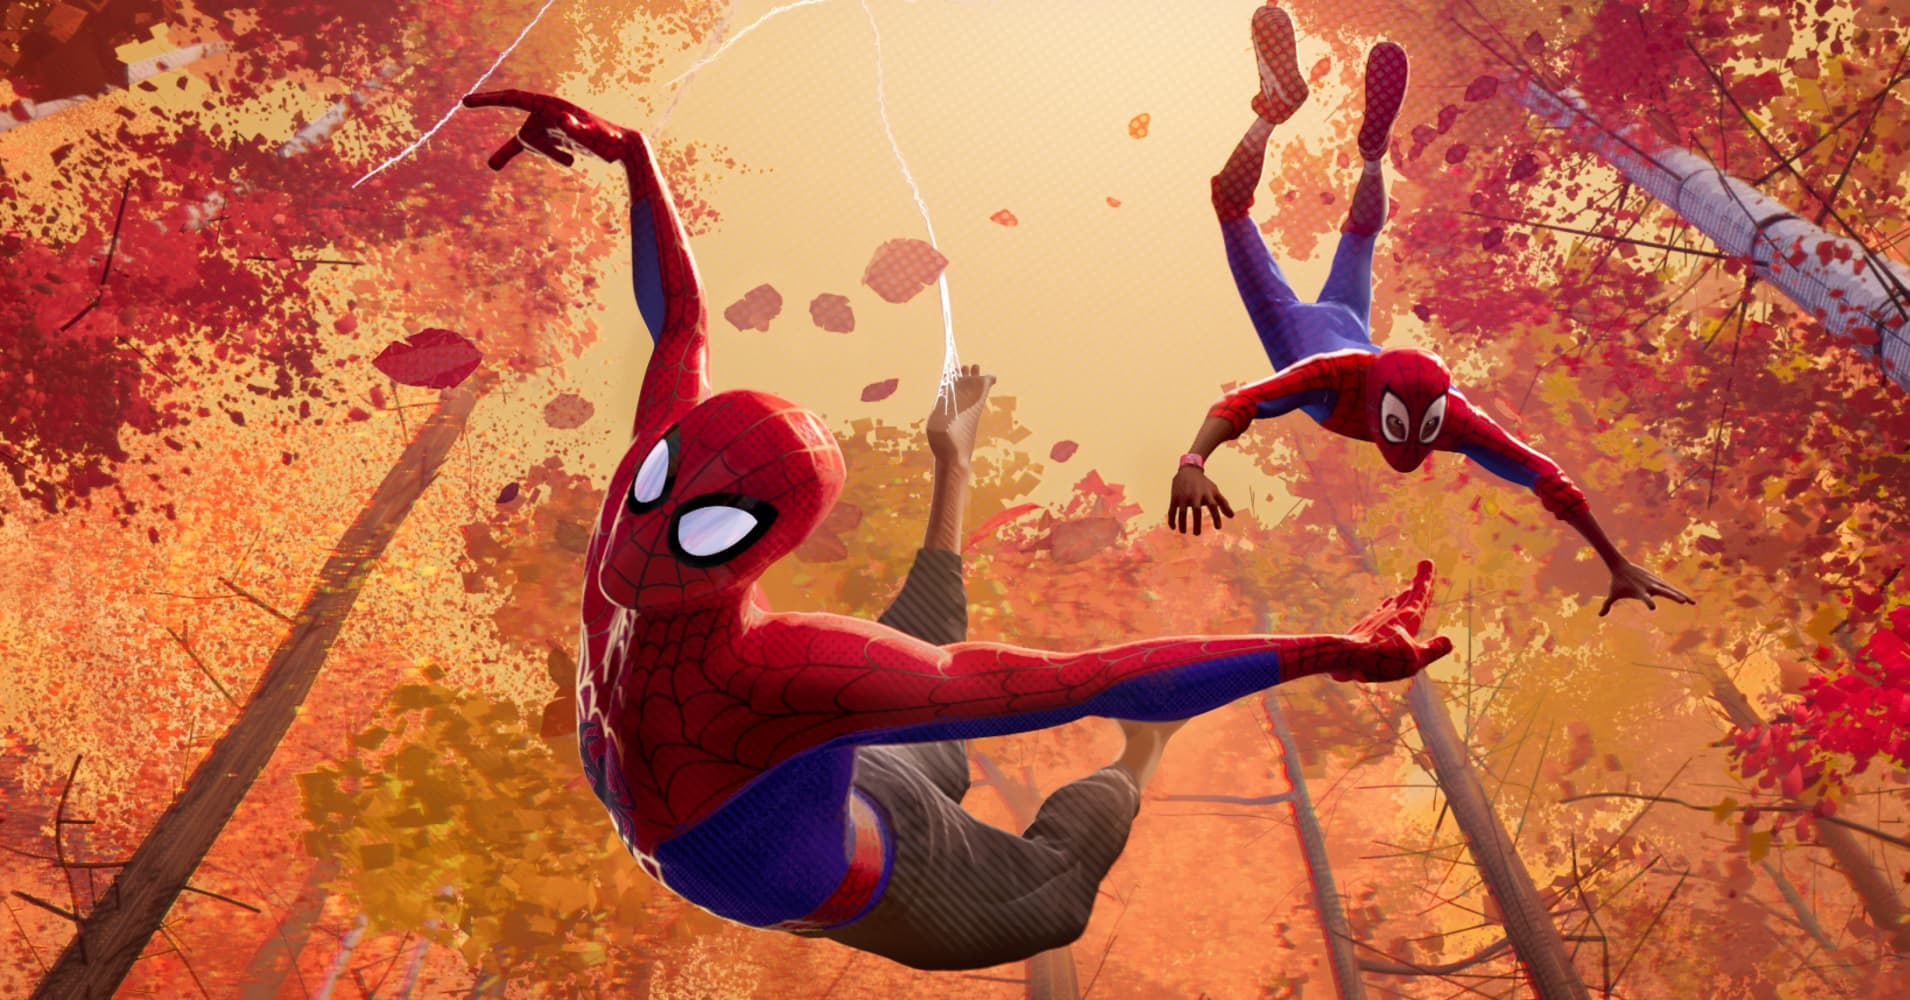 Sony Pictures is opening up a different Spider-Man universe - known as the Spider-Verse - where more than one can wear the mask.